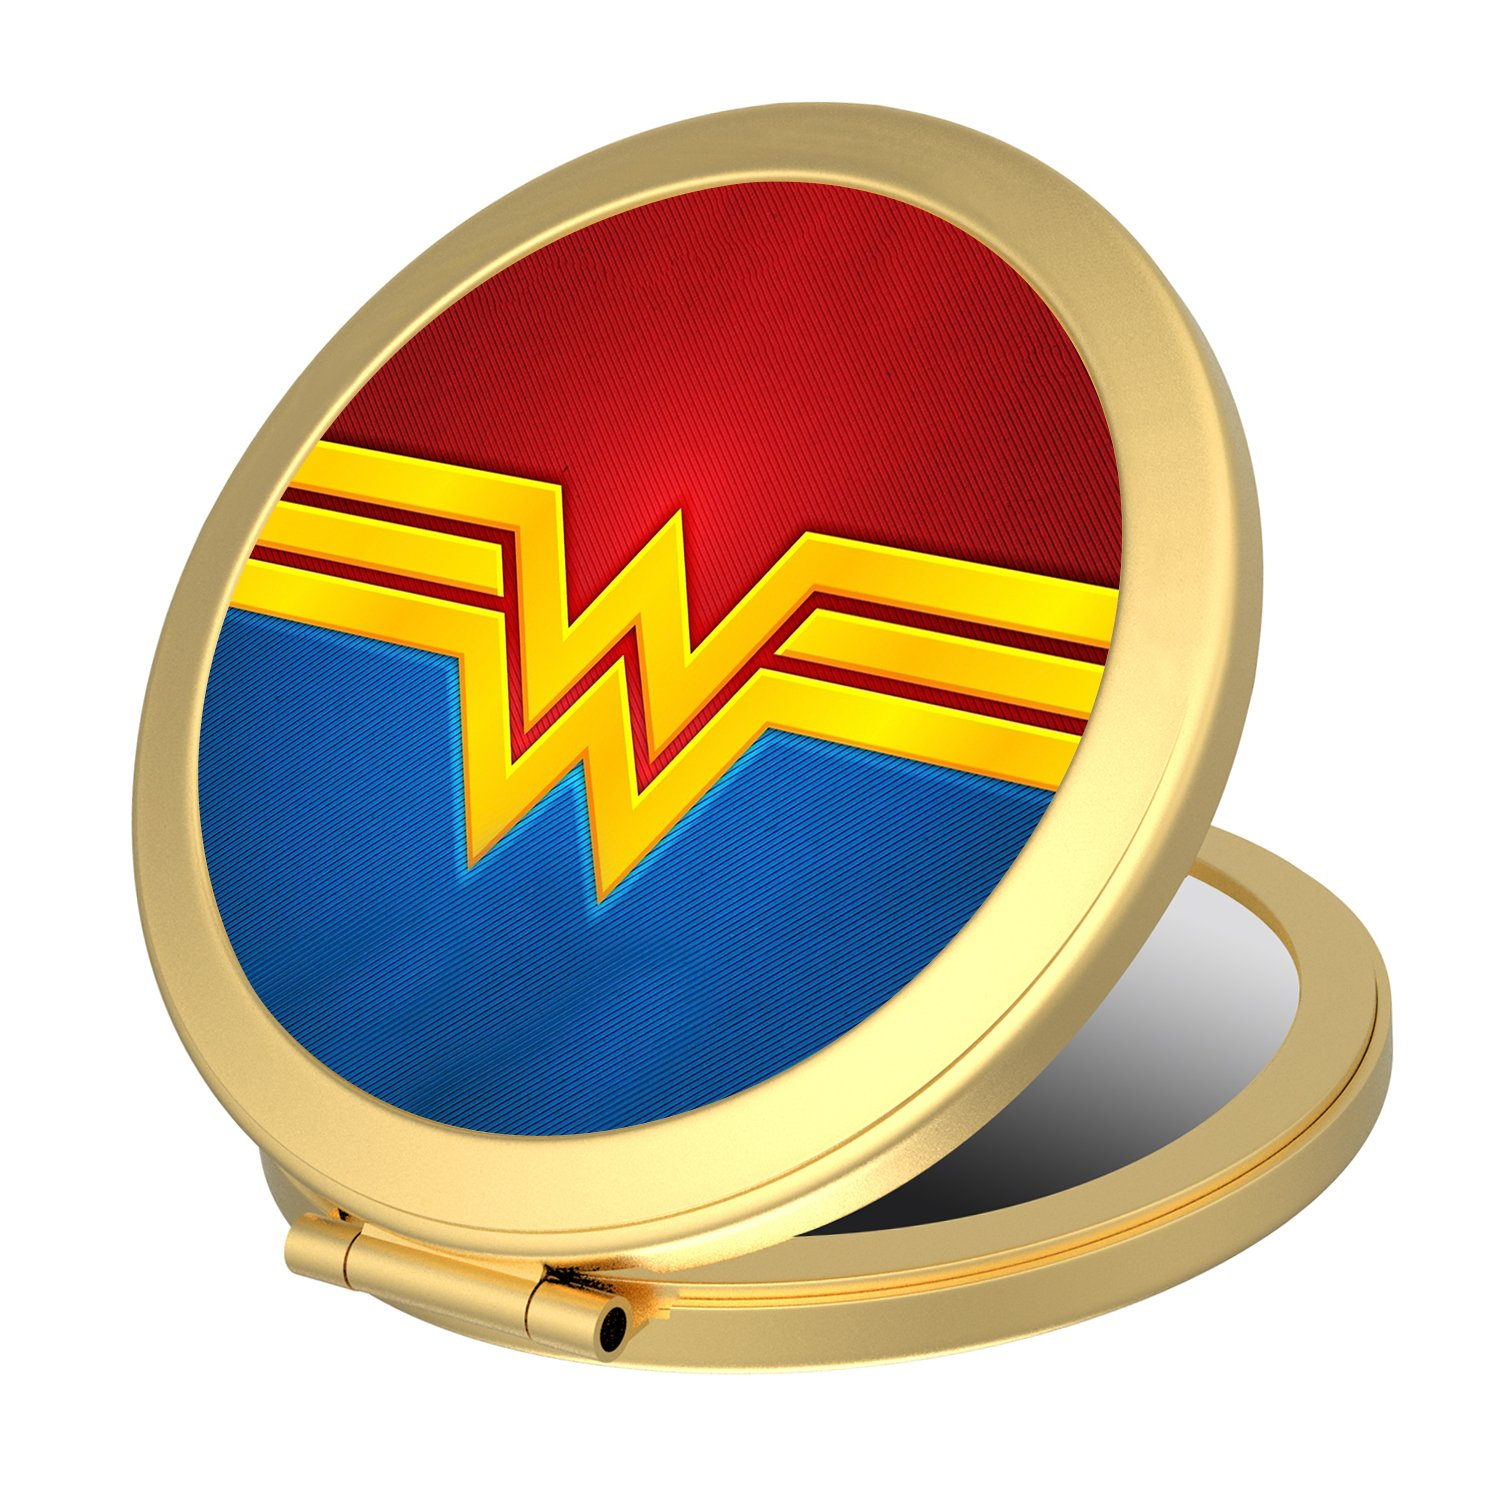 Double Sided Round Compact Mirror, Wonder Woman Small Makeup Mirror Pocket-size for Purses and Travel, Elegant Handheld Makeup Mirror